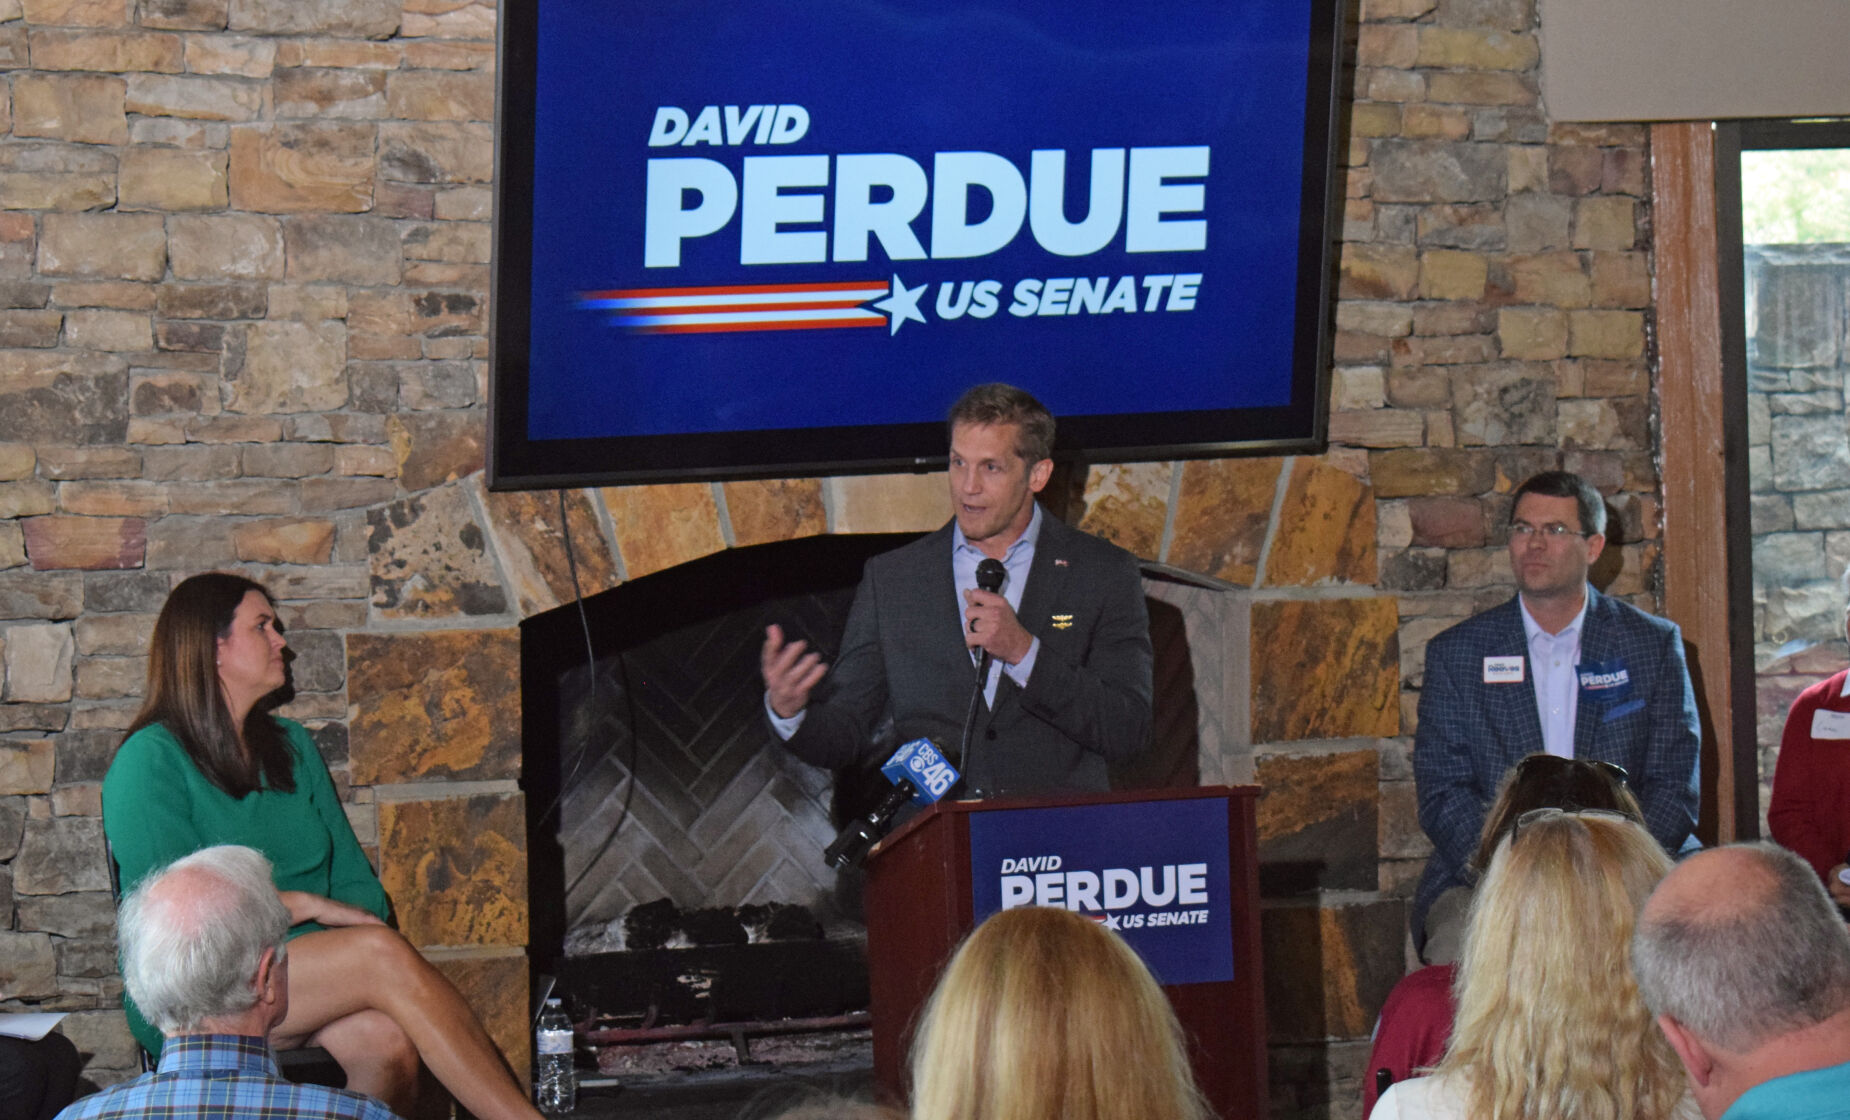 Candidates for 7th Congressional District find themselves joined by Senate campaigns during events in Gwinnett